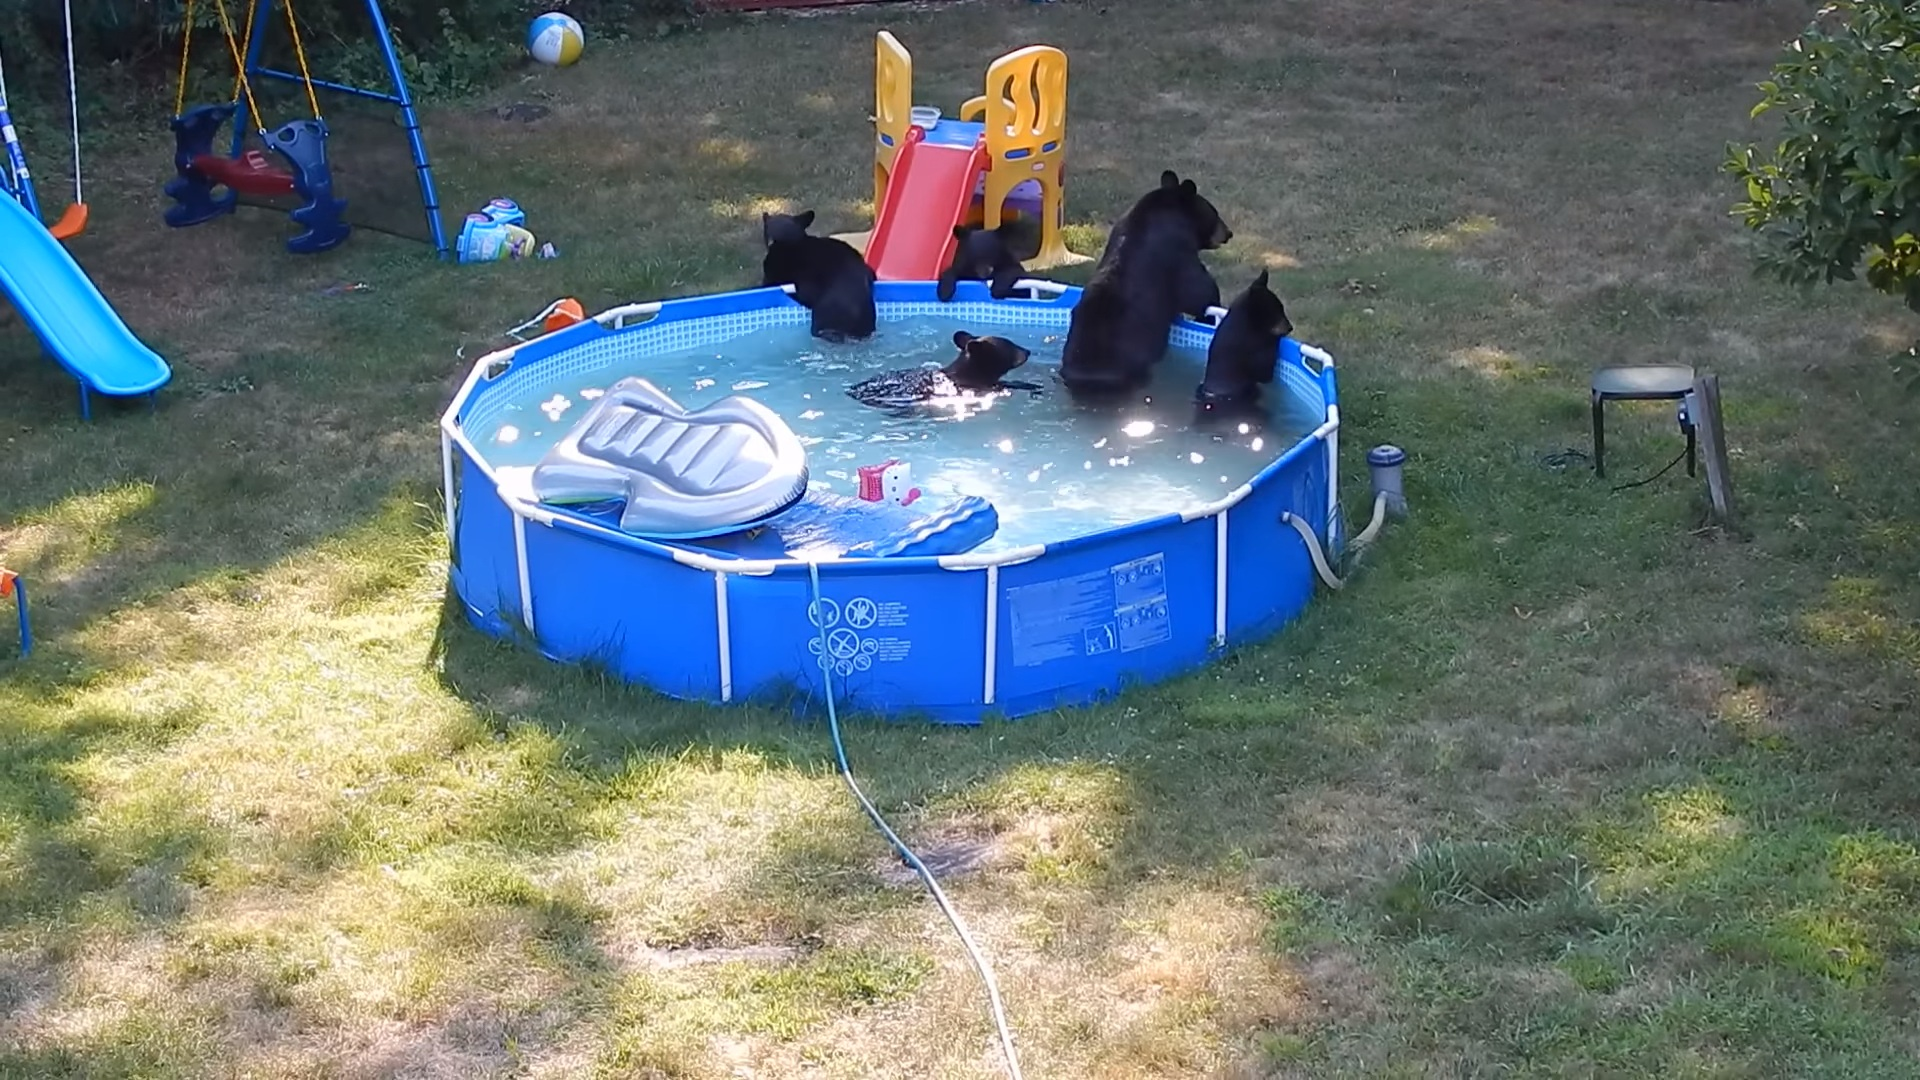 Adorable video of bear cubs swimming in a pool will make